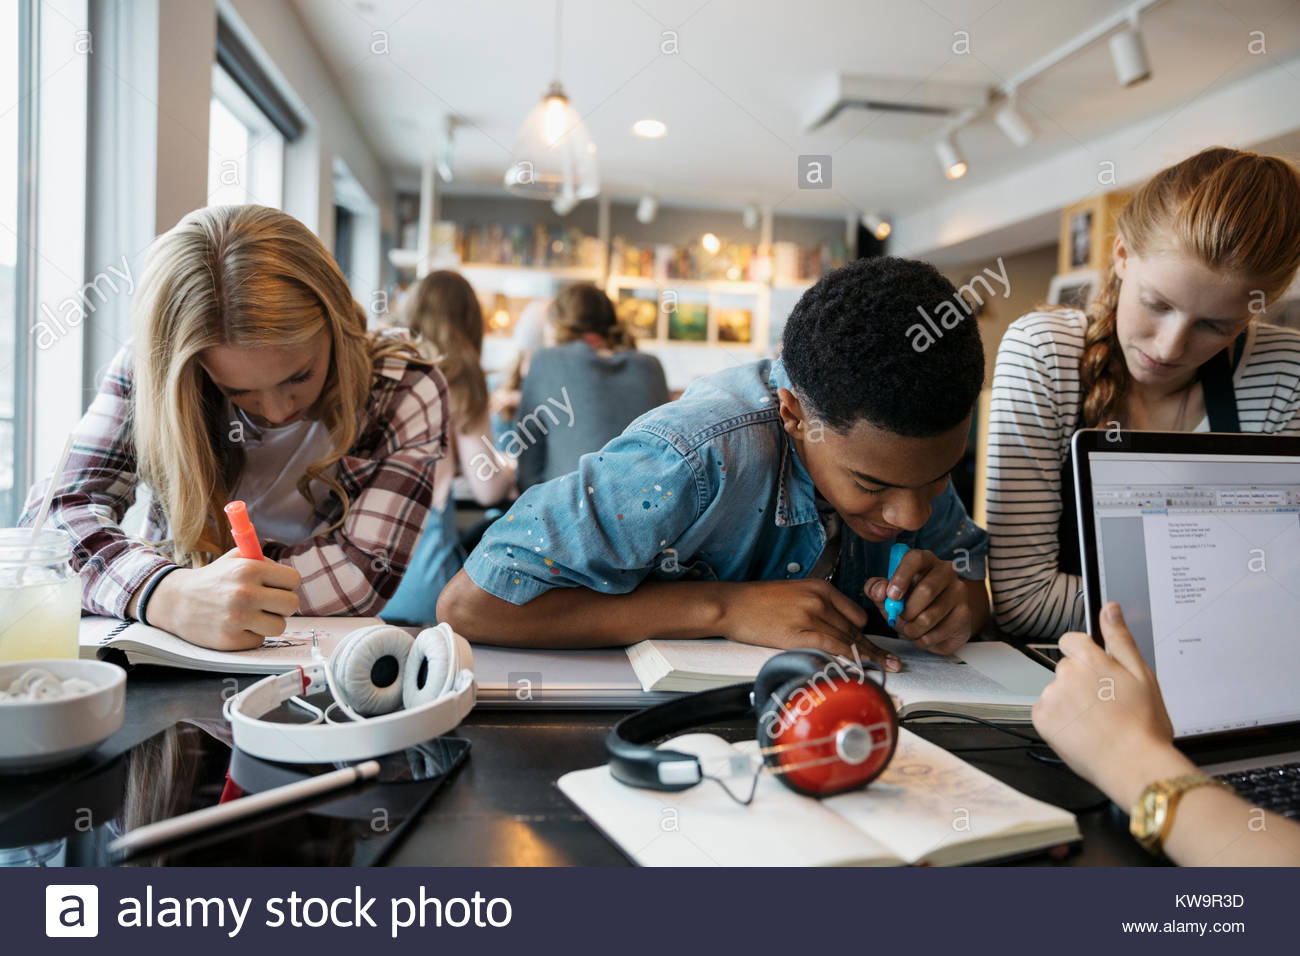 High school students studying at cafe table - Stock Image